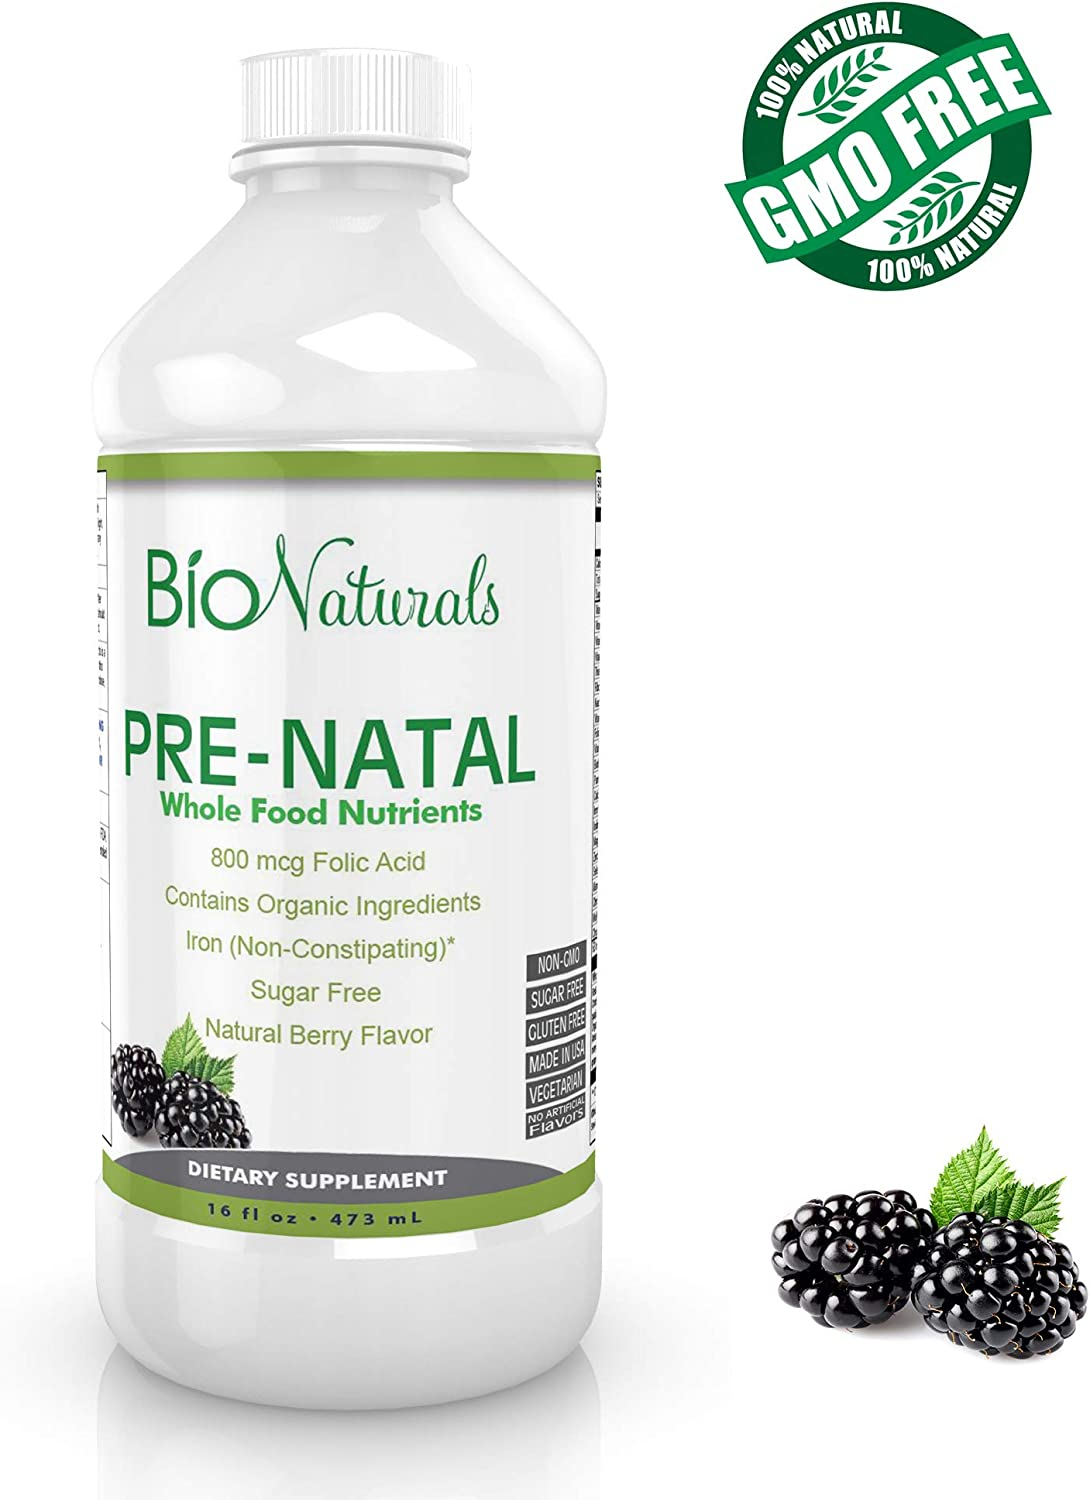 Bio Naturals Prenatal Liquid Vitamins for Women – 100 Vegetarian Supplement w Whole Food Nutrients Organic Ingredients – All Essential Daily Vitamins for Pregnancy – No Sugar or Gluten – 16 fl oz